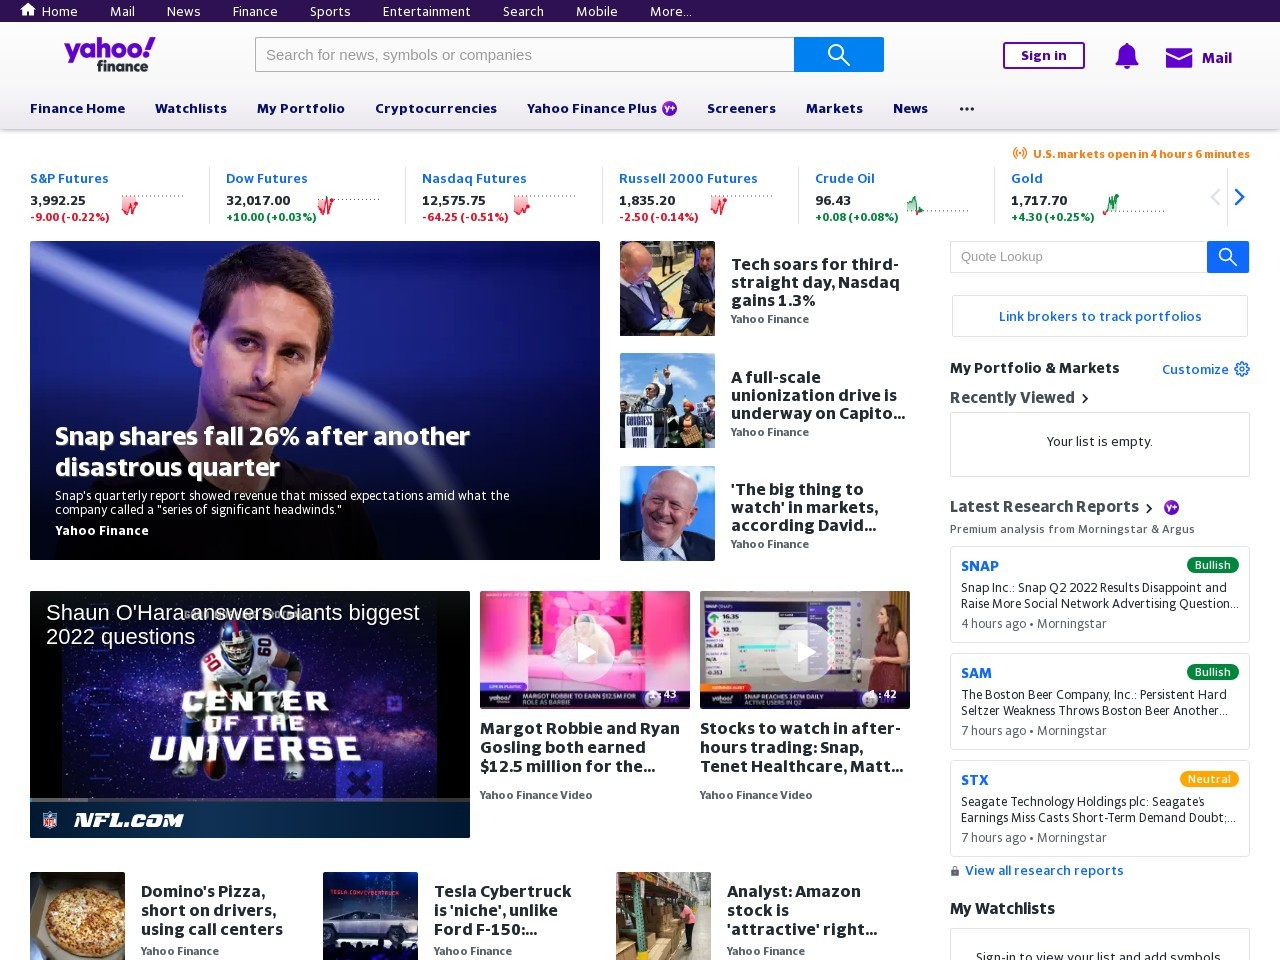 Sun Capital Partners On Yahoo! Finance